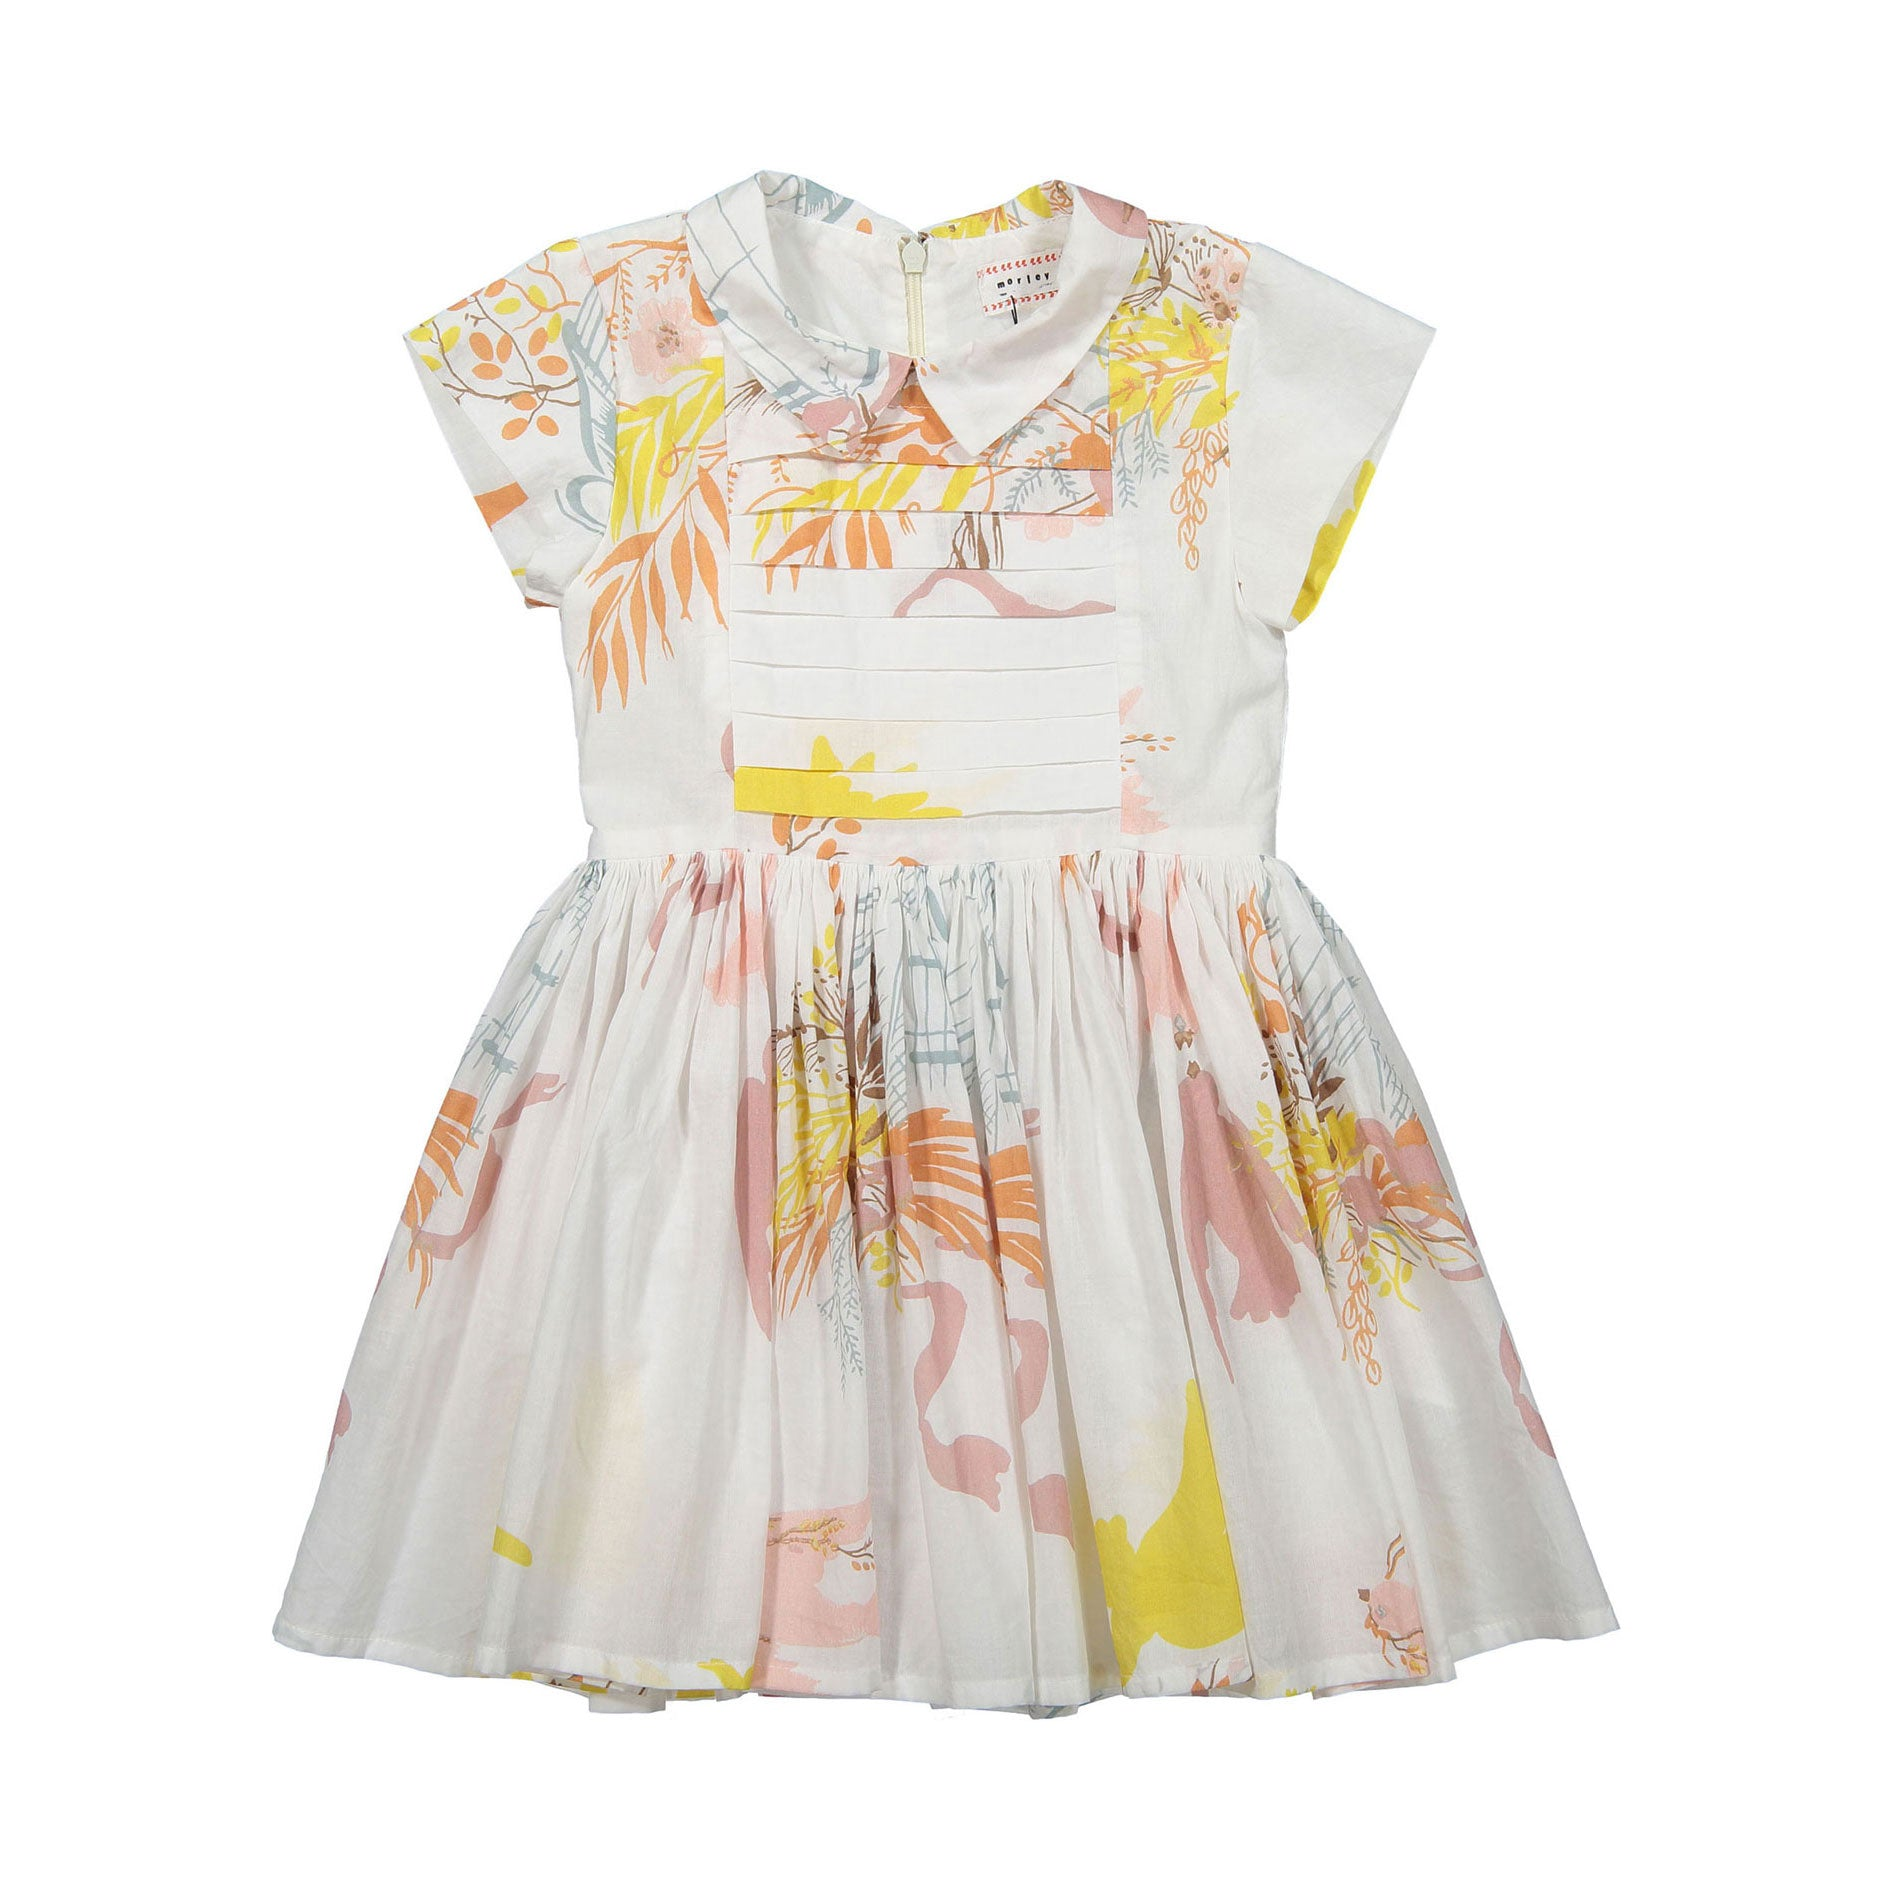 Morley White Bird Print Lemia Dress